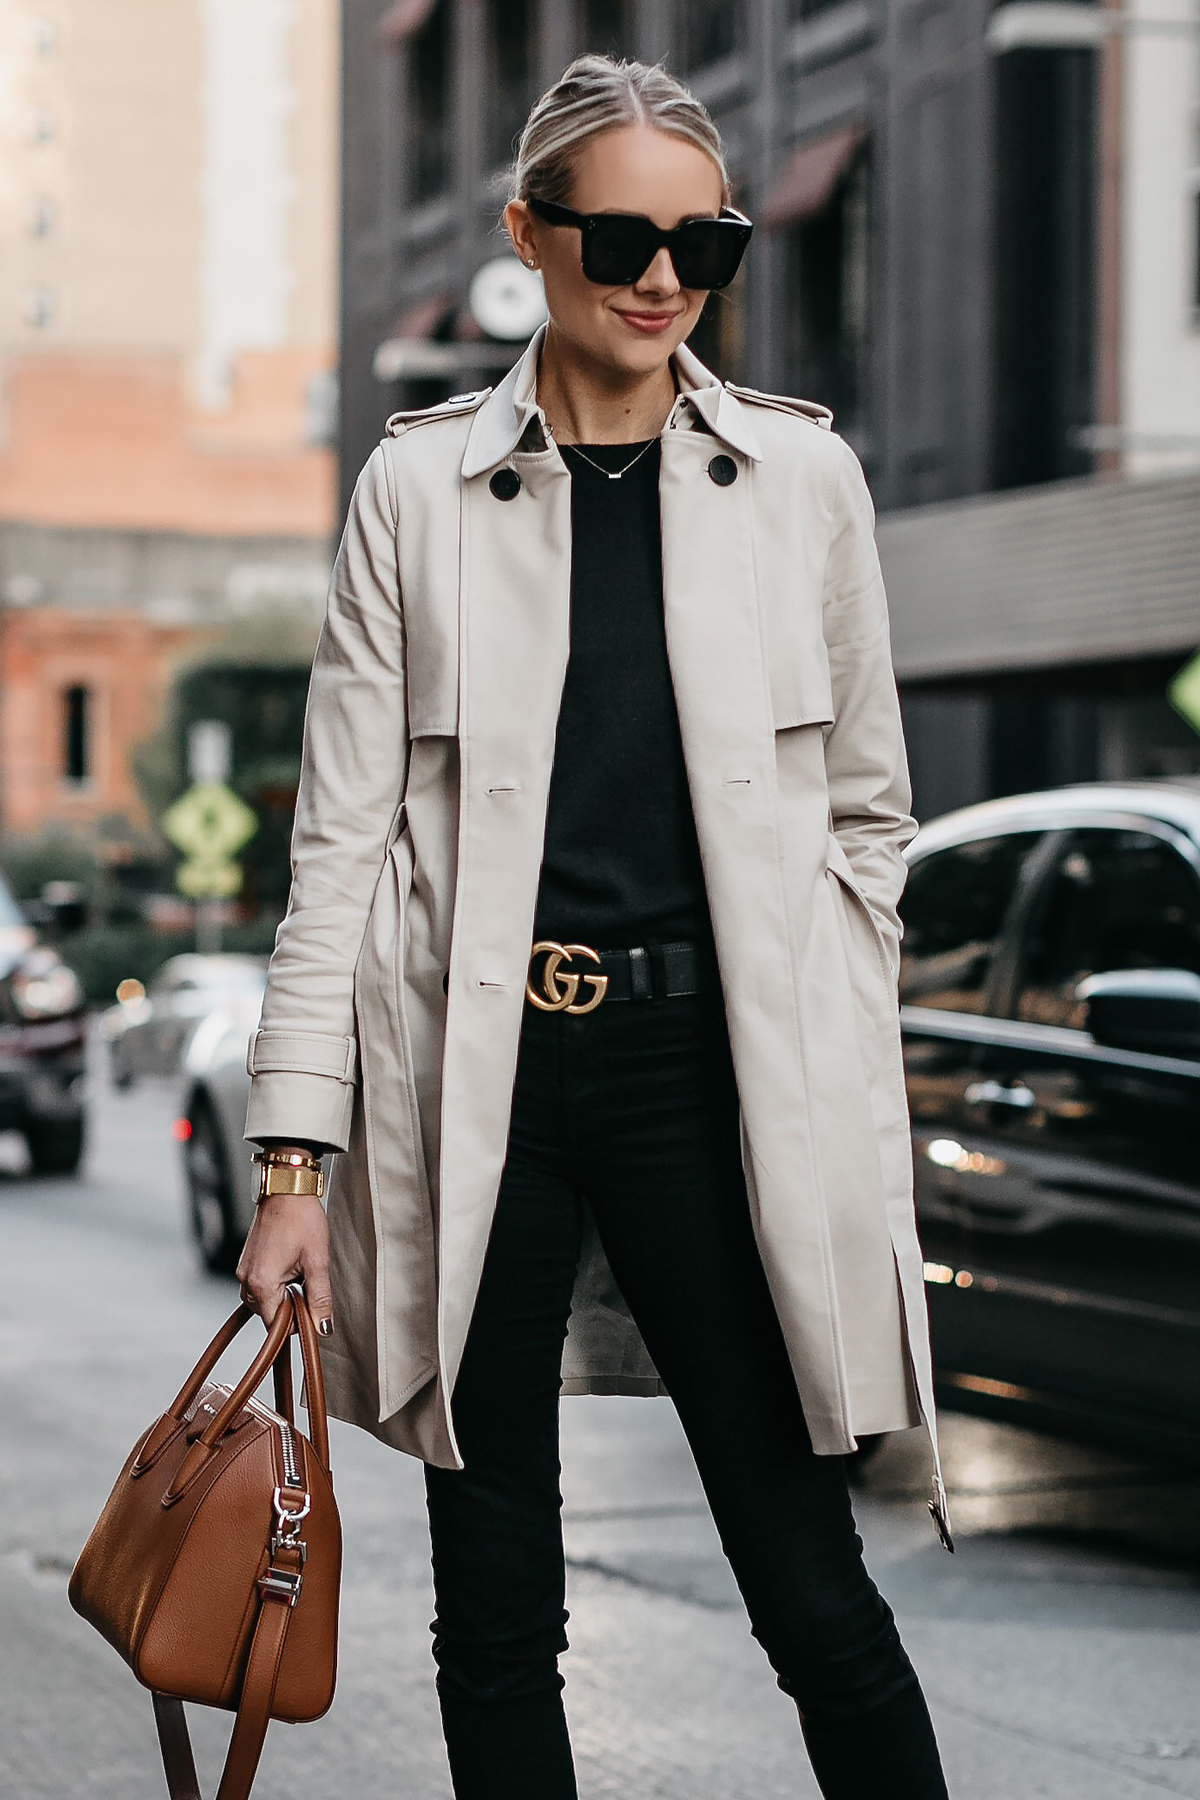 Blonde Woman Wearing Club Monaco Trench Coat Black Sweater Black Skinny Jeans Gucci Marmont Belt Givenchy Antigona Cognac Satchel Fashion Jackson Dallas Blogger Fashion Blogger Street Style